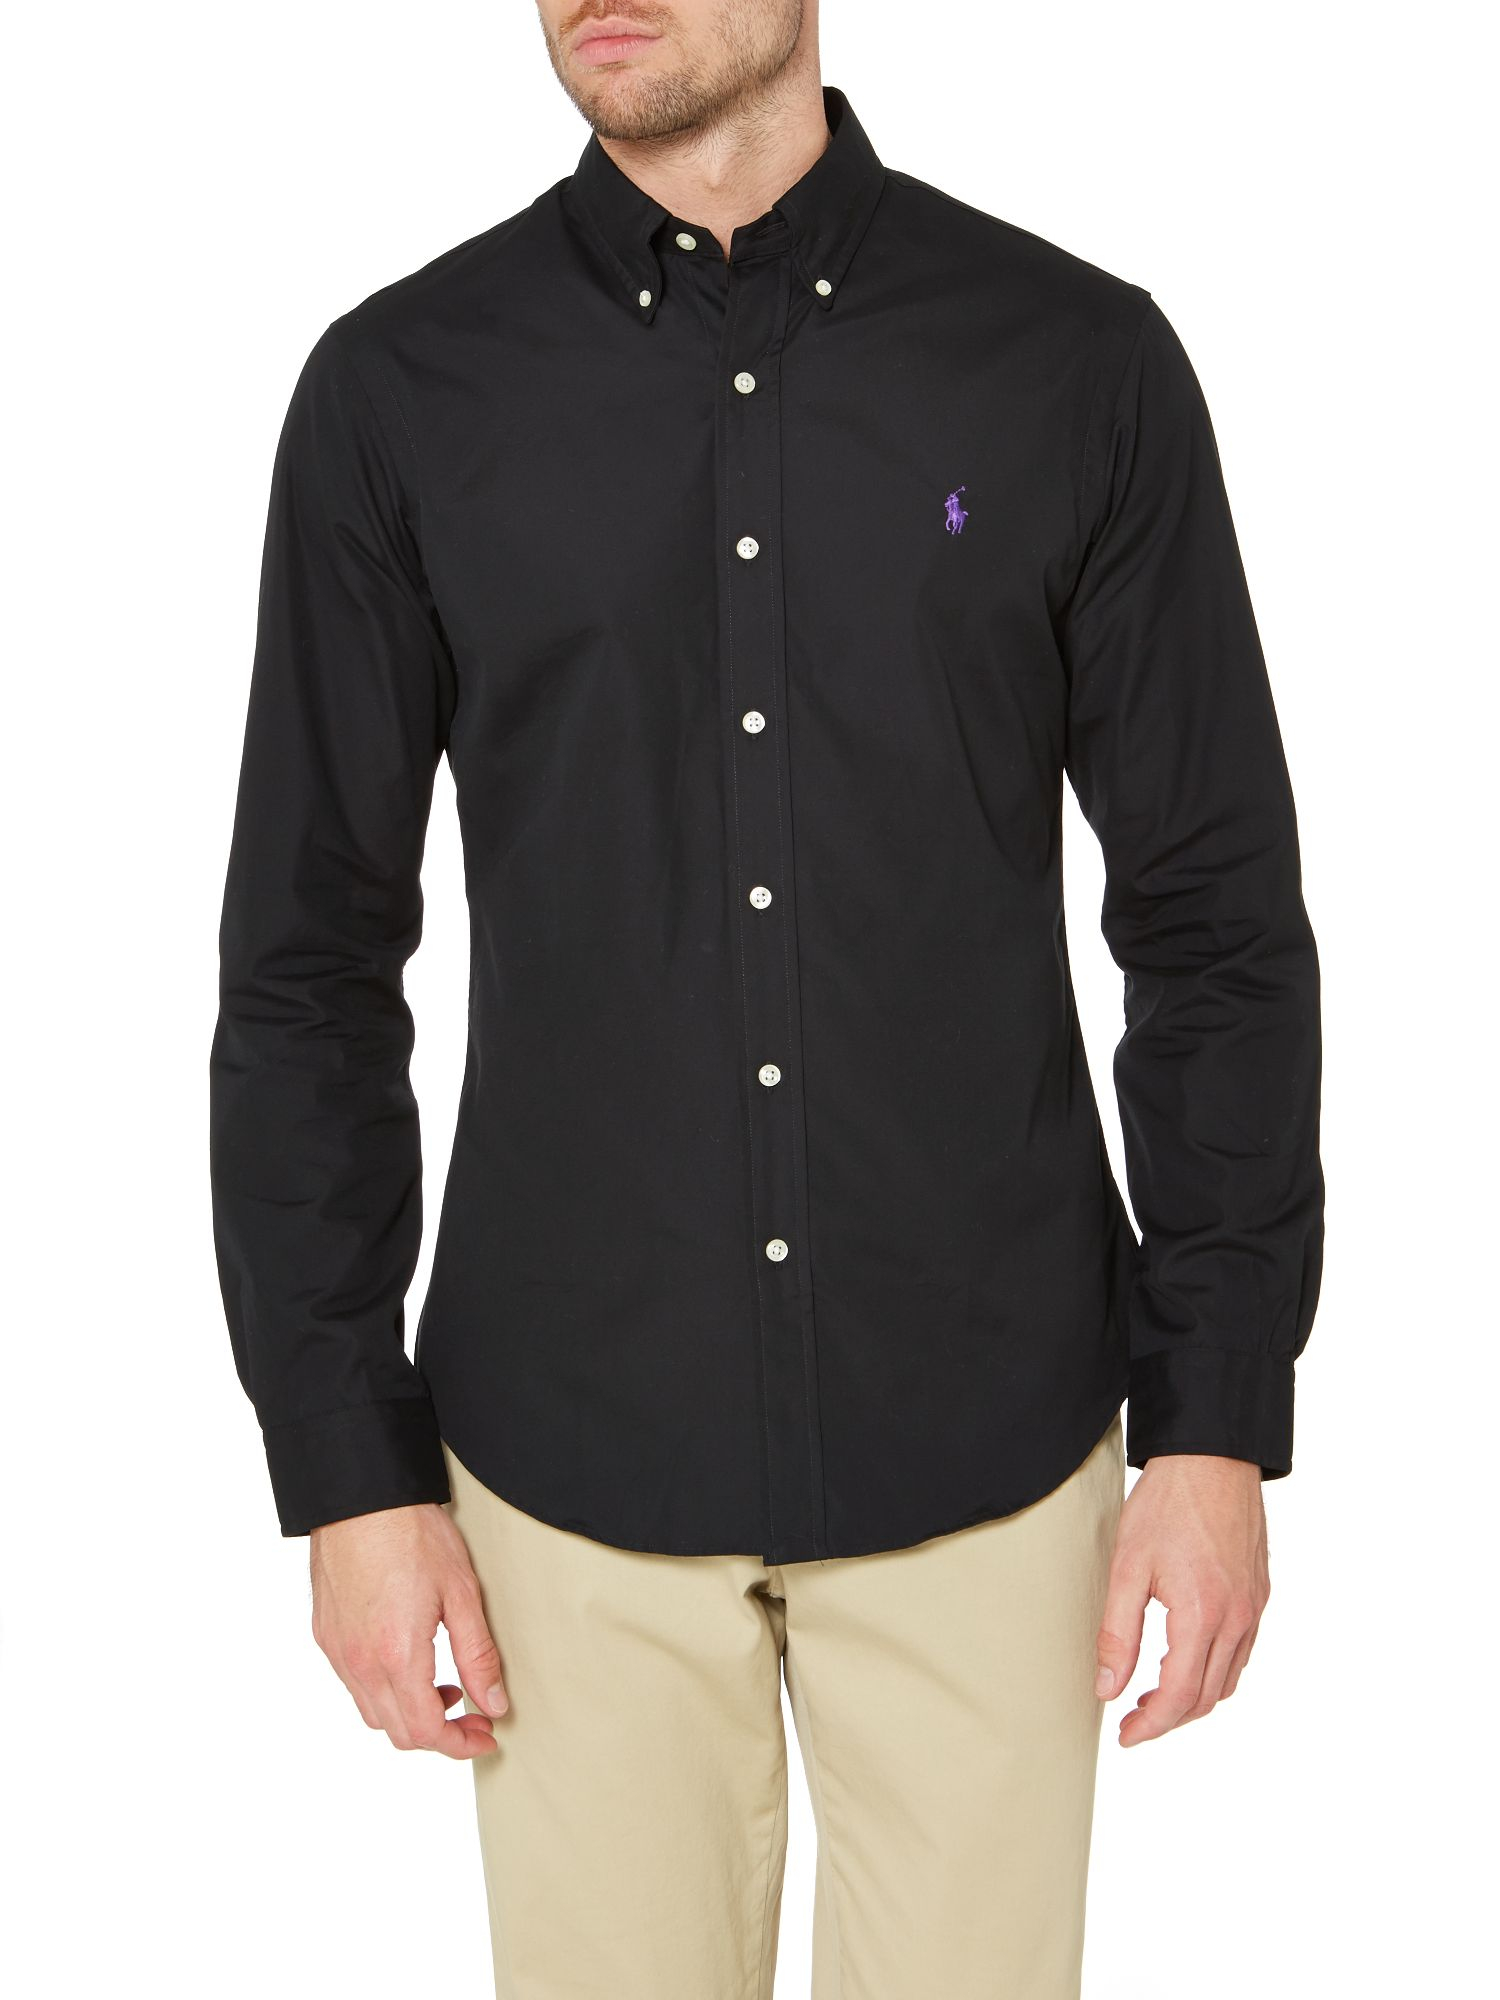 Polo ralph lauren long sleeve slim fit plain shirt in for Black fitted polo shirt